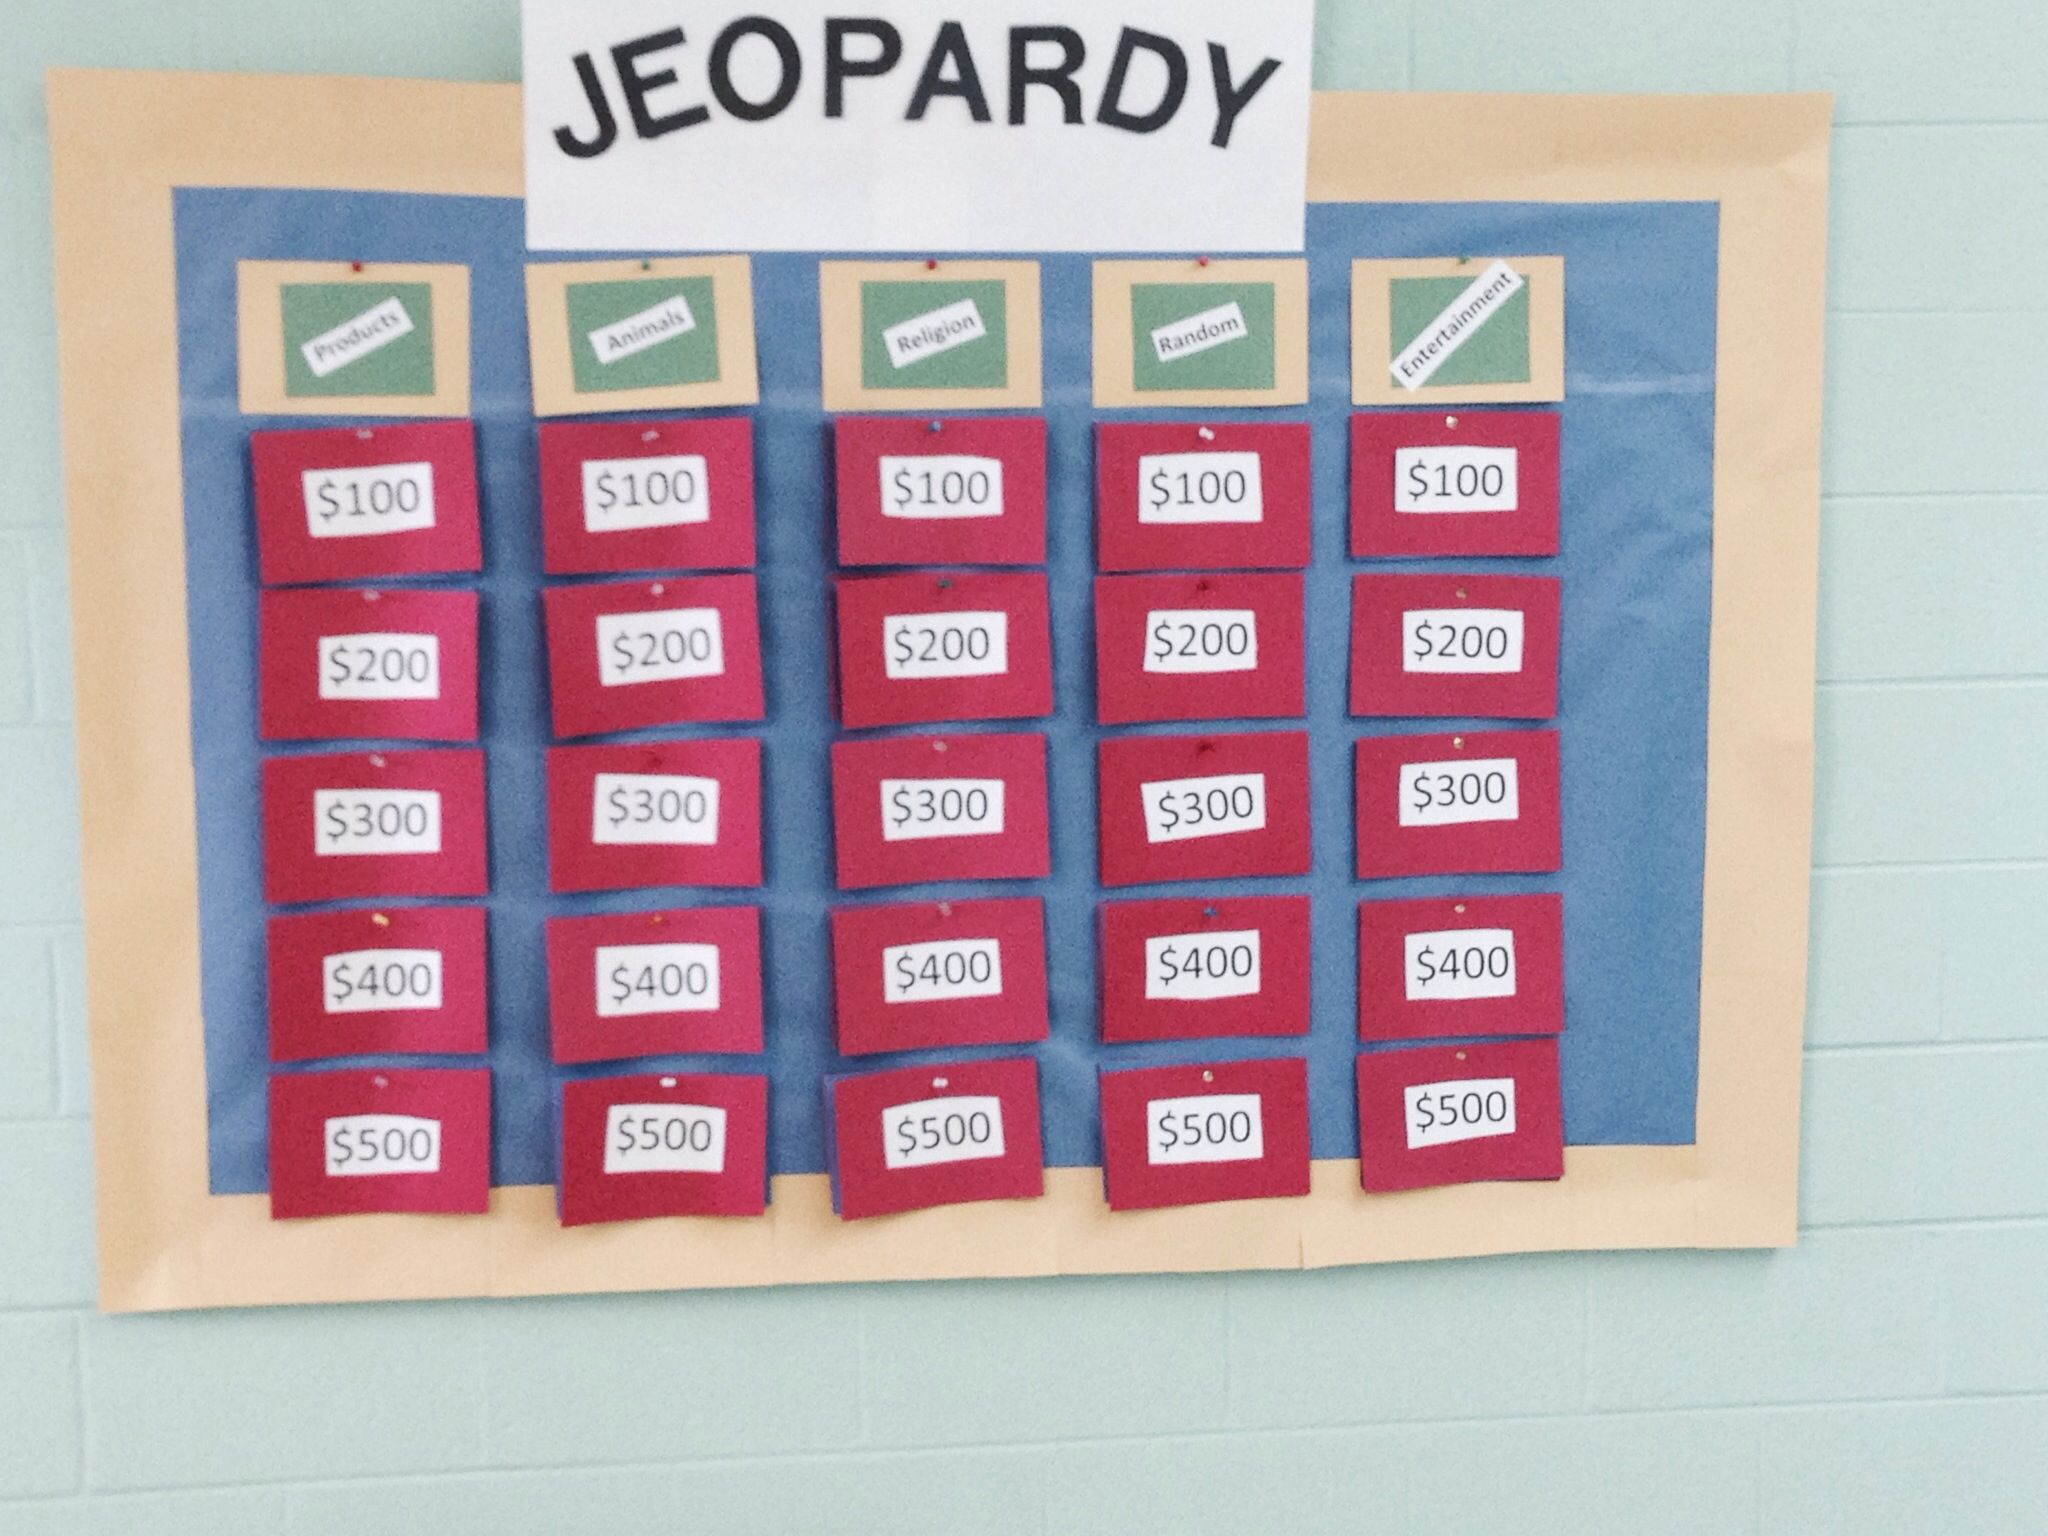 Jeopardy Board For Our Church Junk Food And Jeopardy